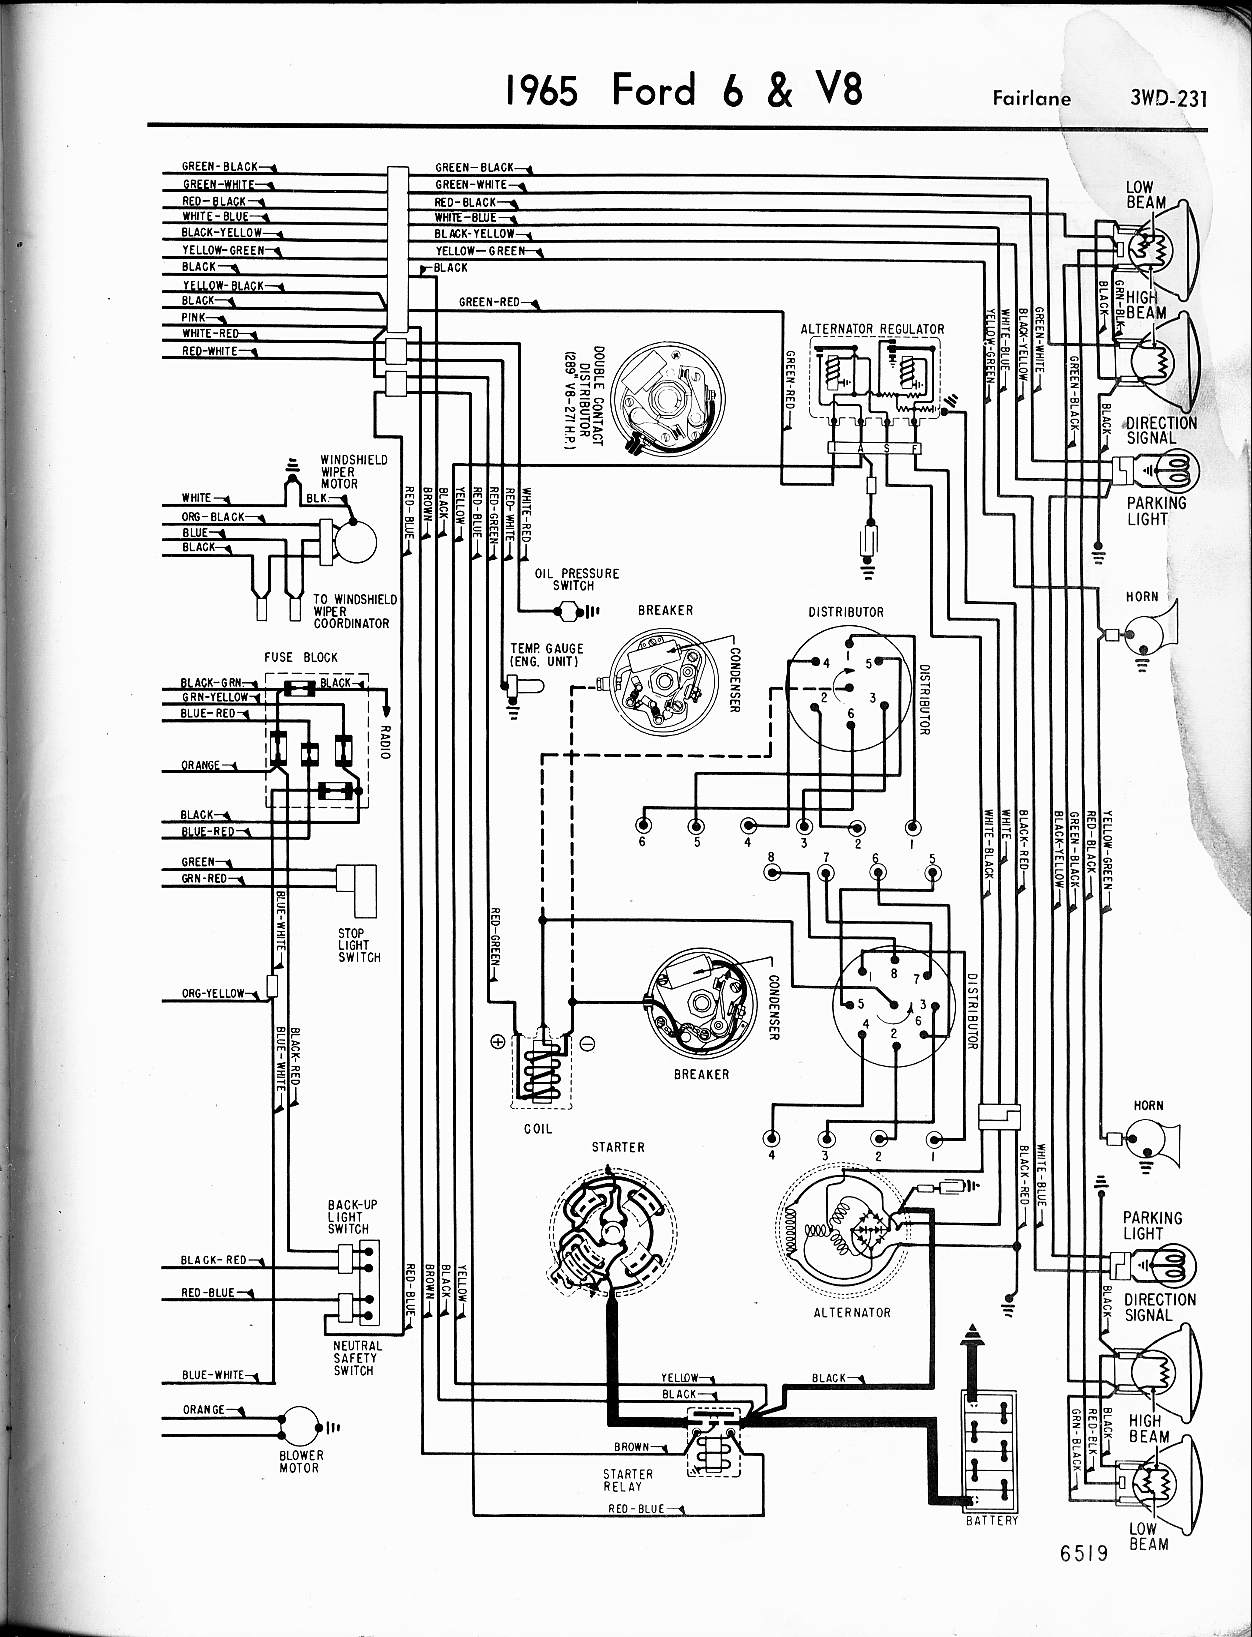 485854 Wiring A Pac Tr7 To Avh P4200dvd also Simple Circuit Diagrams furthermore Page 006 additionally Ababaqa further 1138424 56 Electric Wiper Motor. on wire diagram